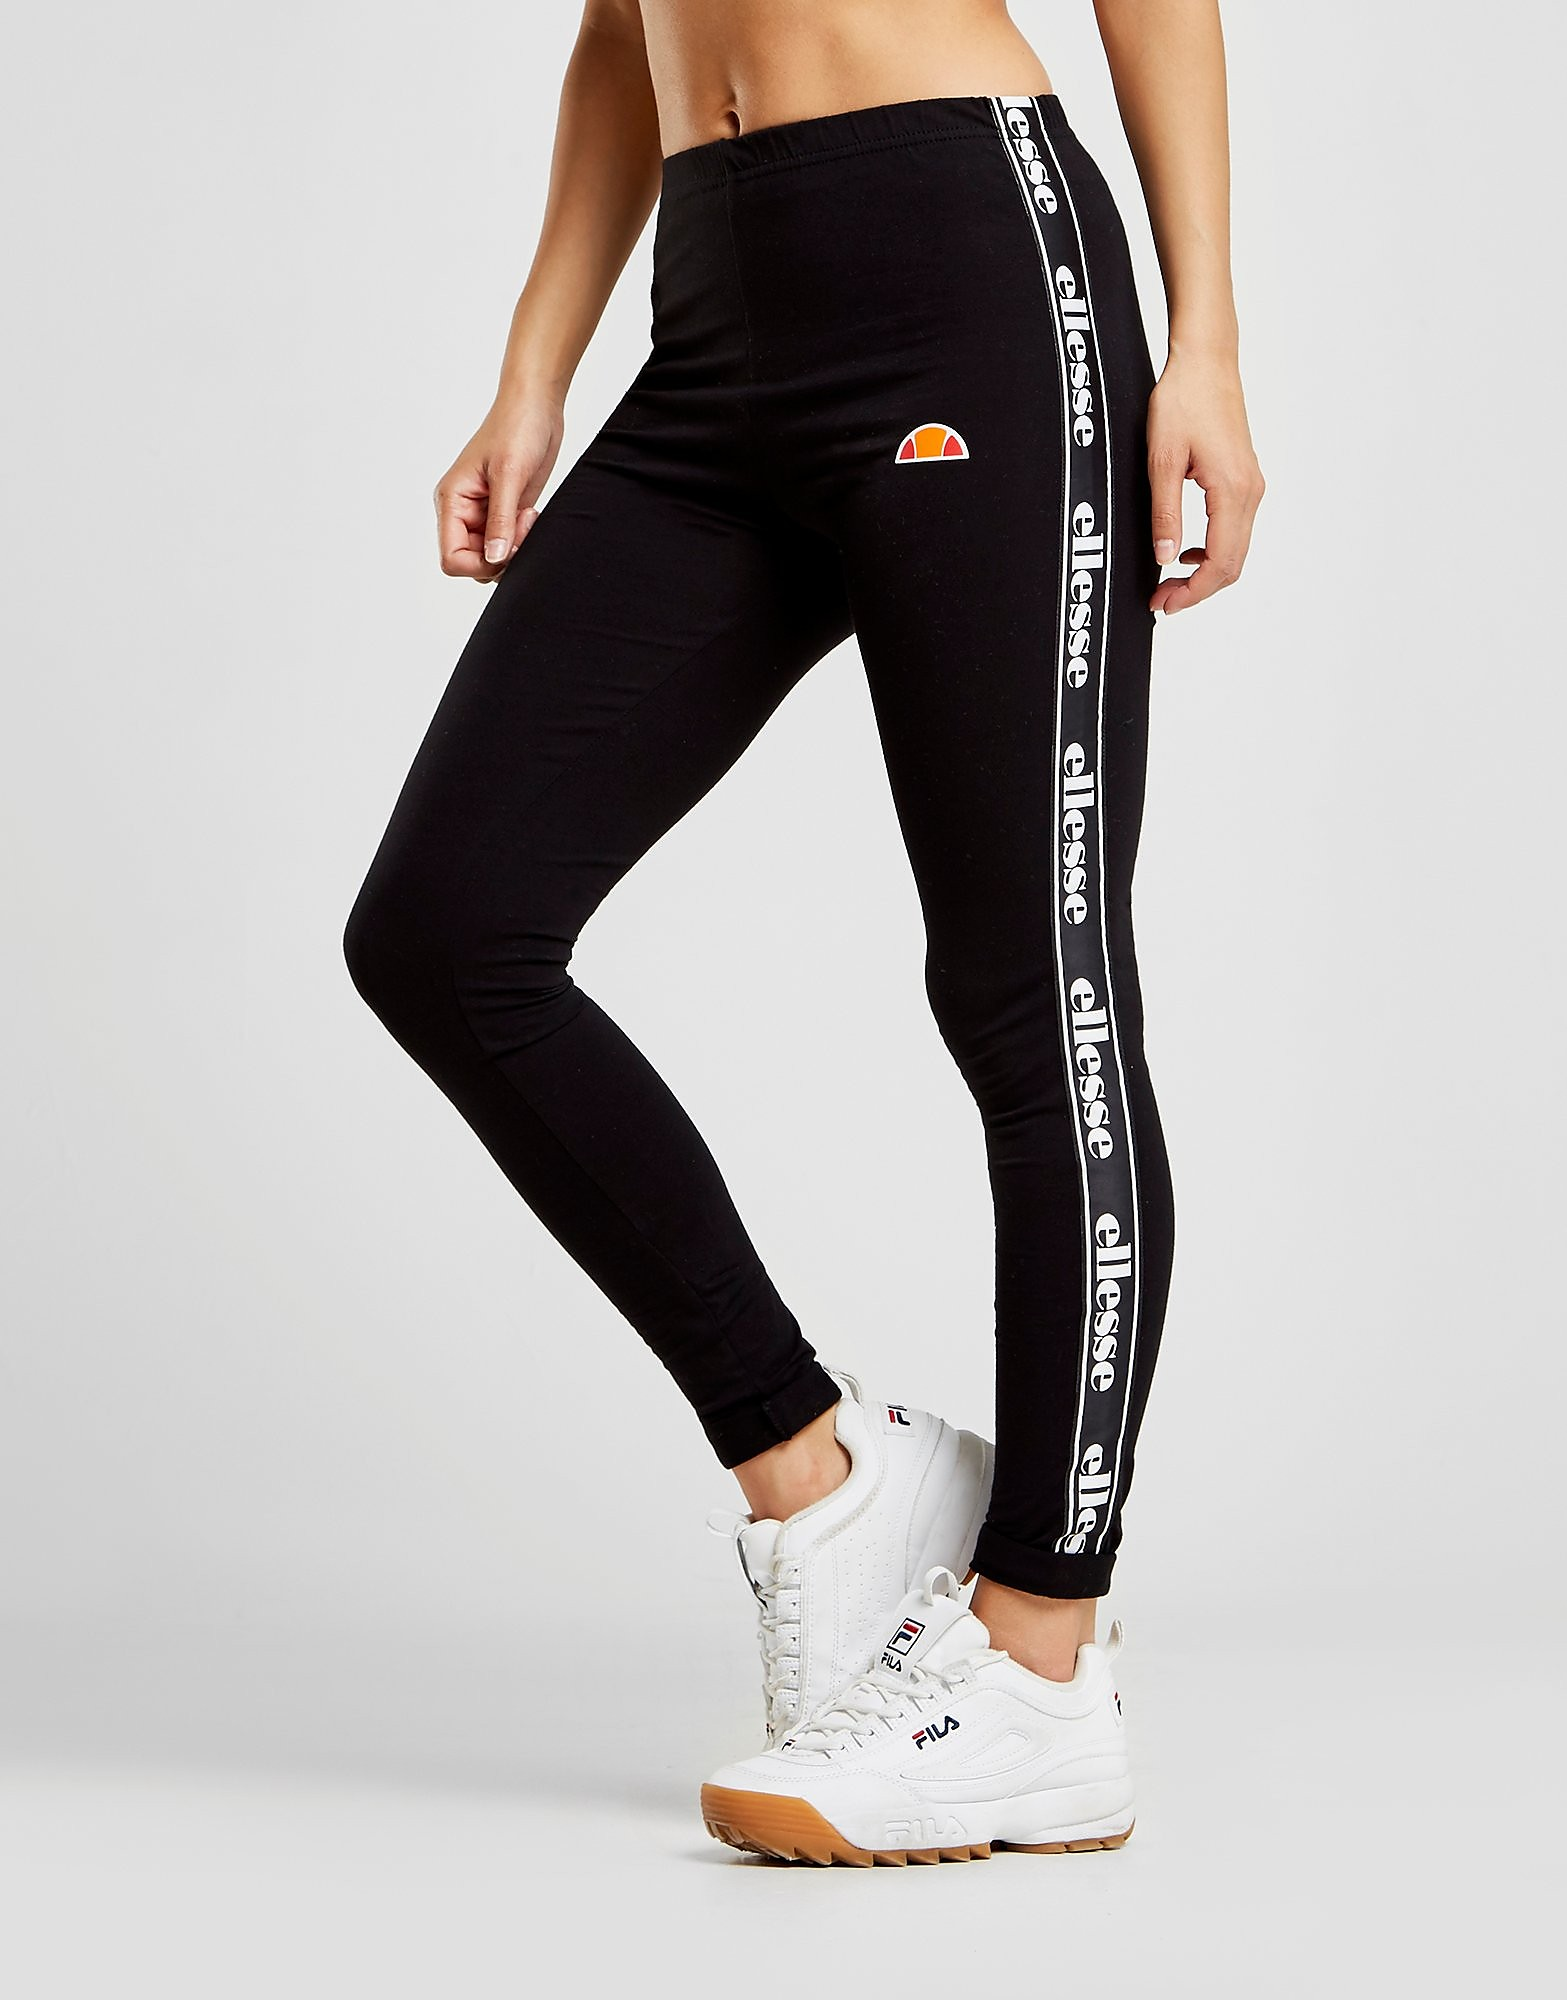 Ellesse leggings Tape